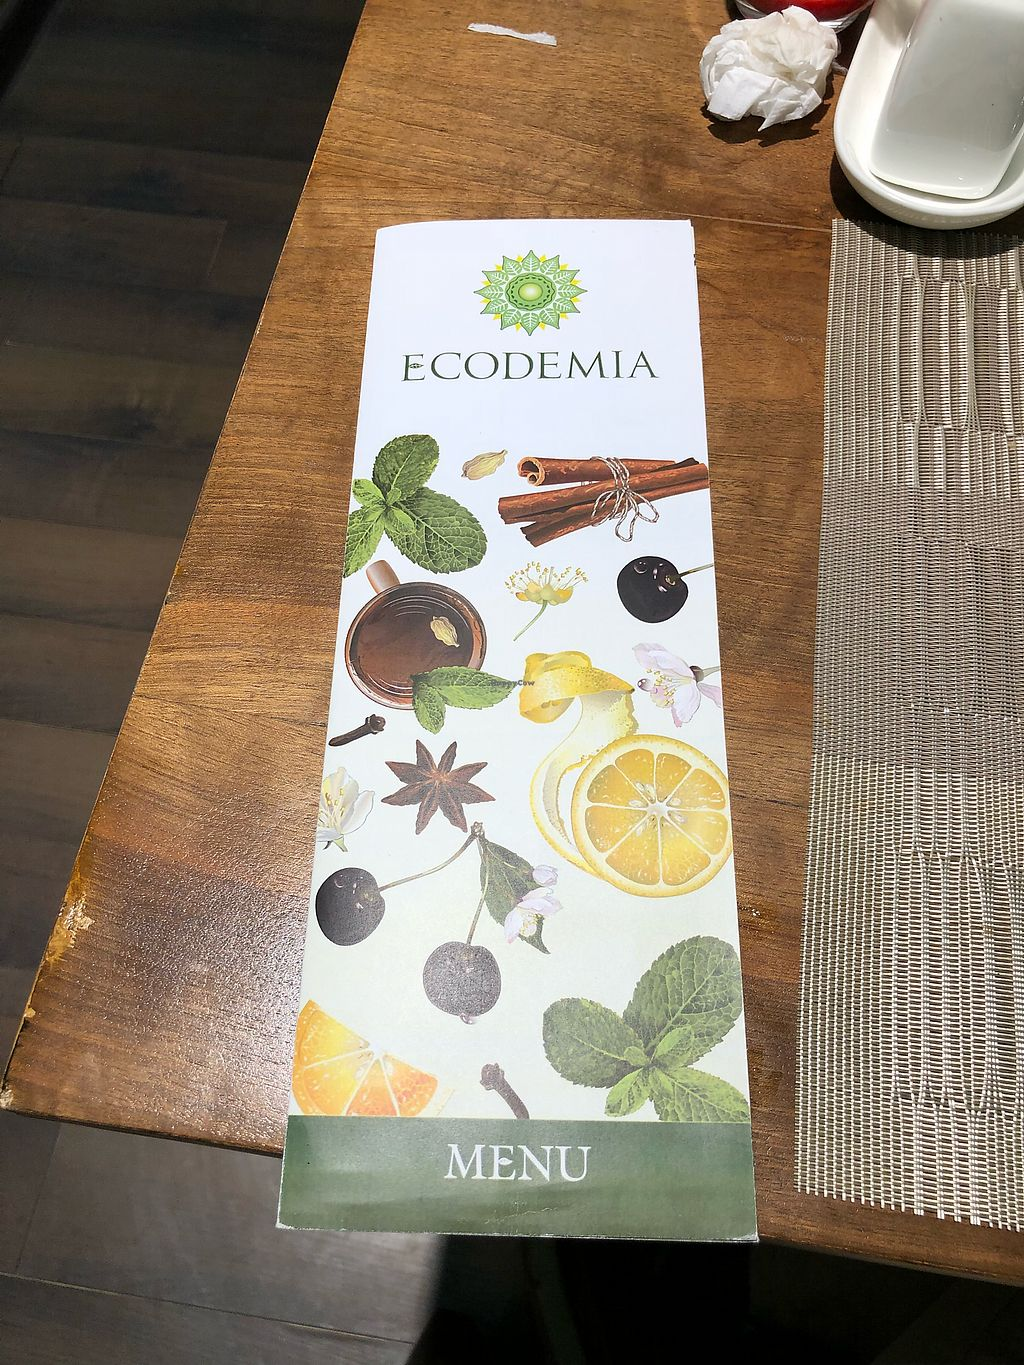 """Photo of Ecodemia  by <a href=""""/members/profile/VegMikel"""">VegMikel</a> <br/>Menu cover <br/> December 30, 2017  - <a href='/contact/abuse/image/108231/340934'>Report</a>"""